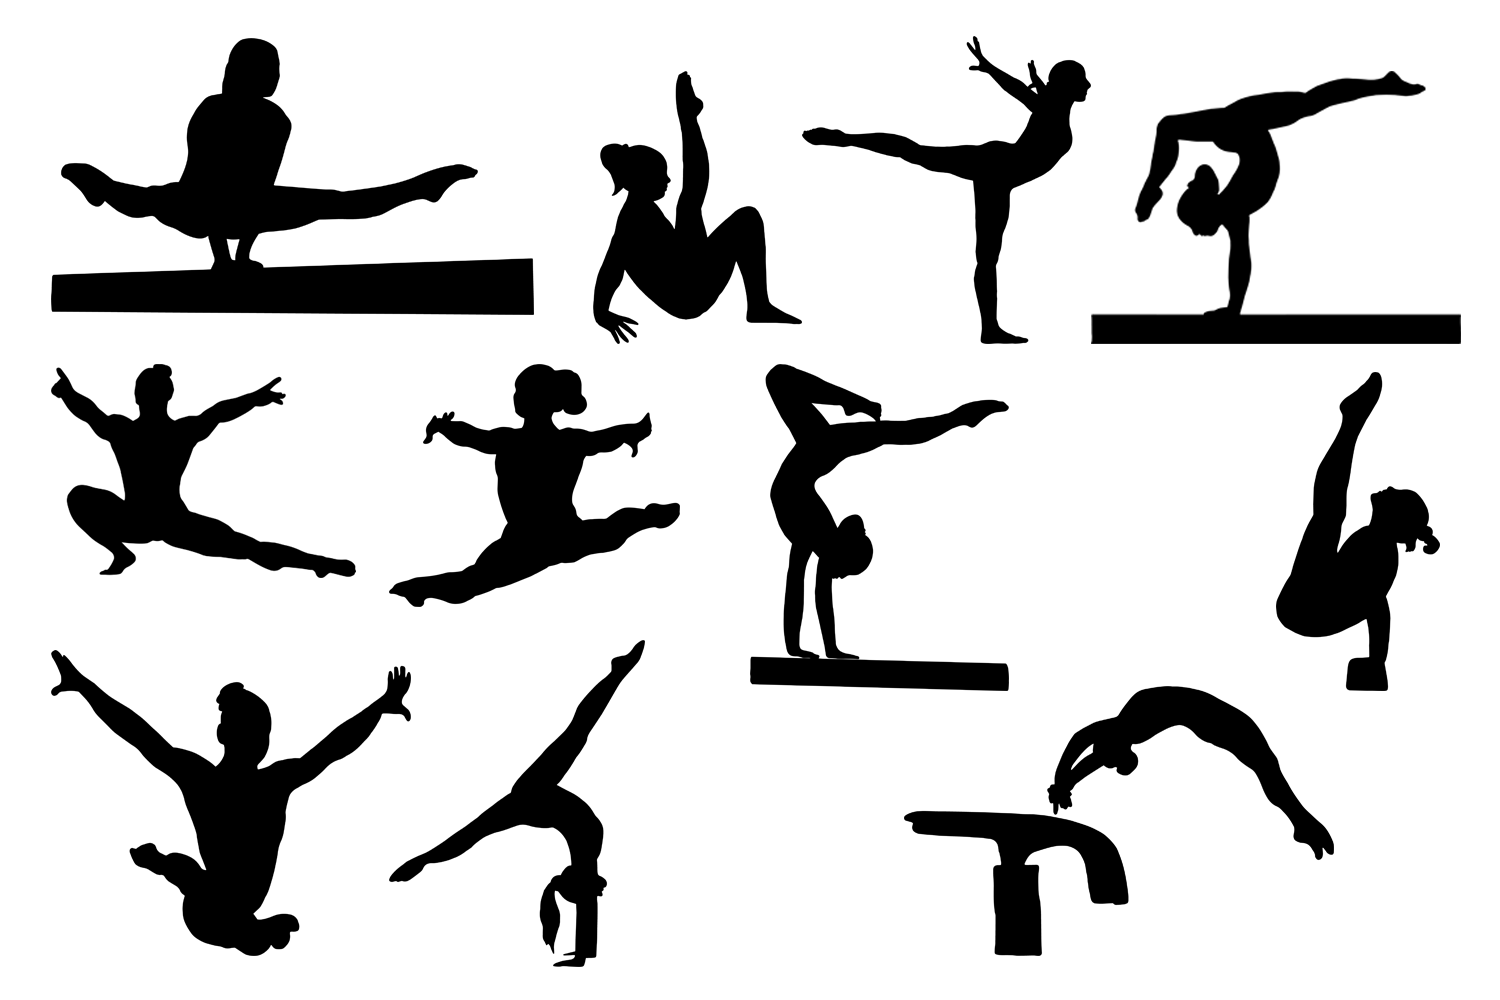 gymnast silhouettes flipz gymnastics recreational competitive classes in gymnast silhouettes